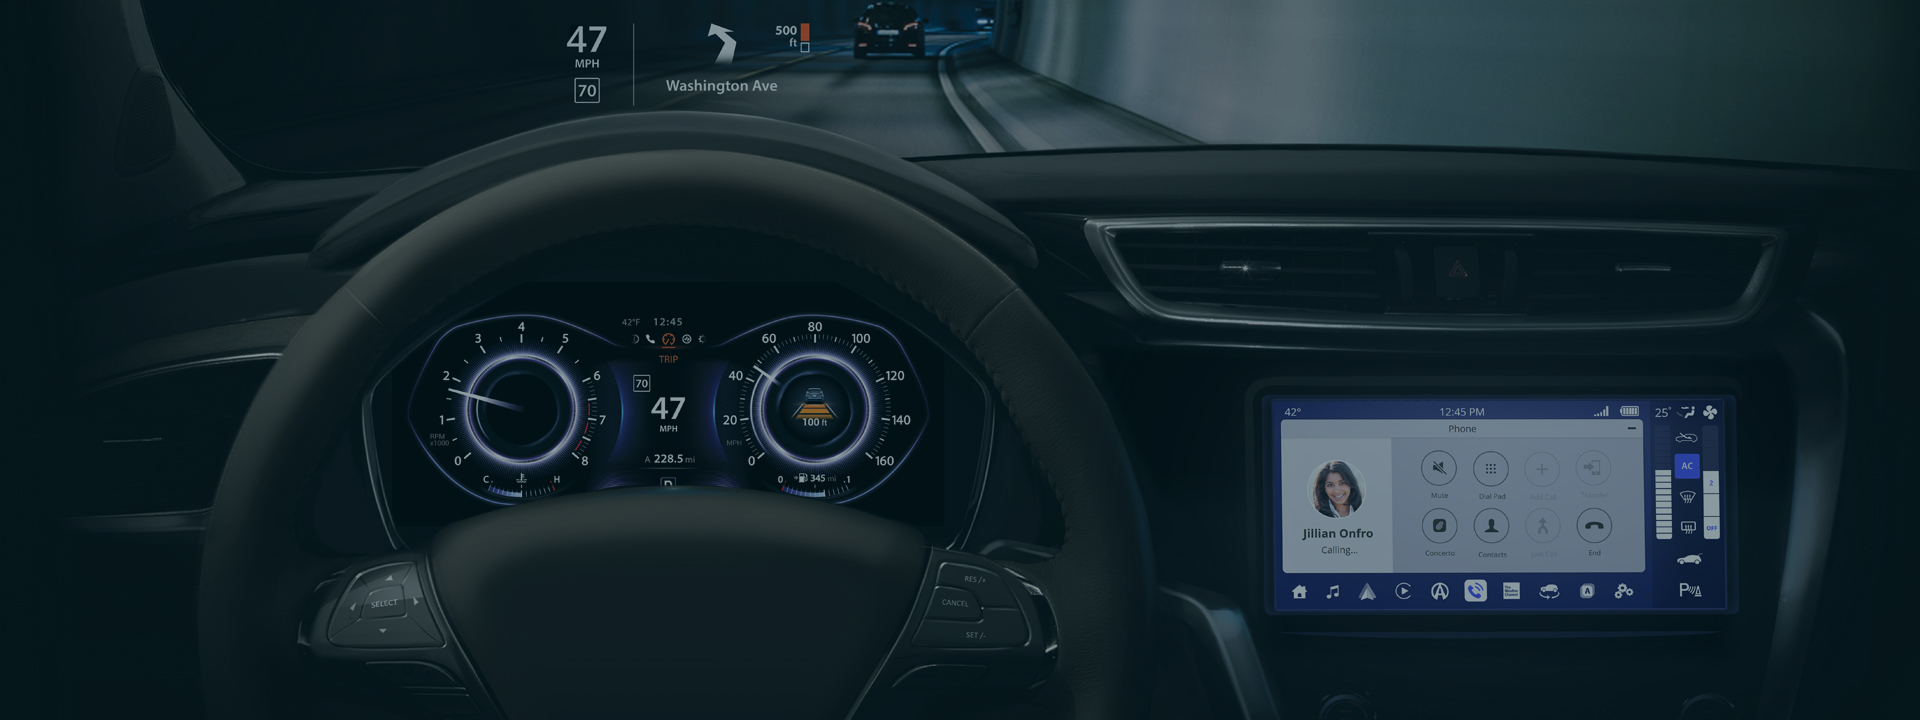 products-car-interior-cluster-display-car-driving-in-tunnel